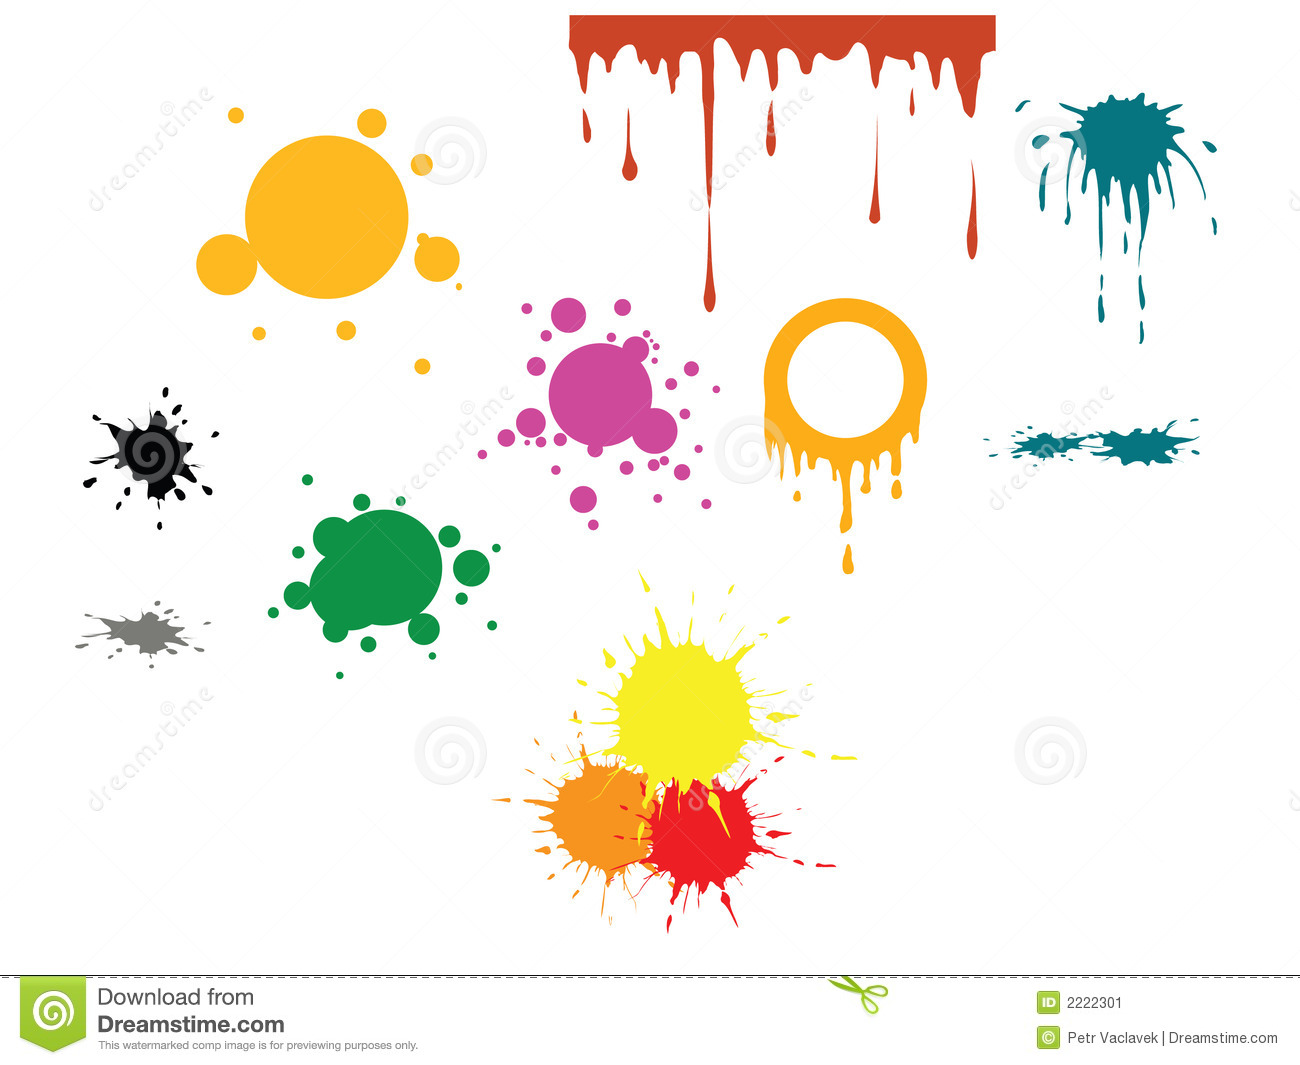 Vector spots - various spots and various colors.